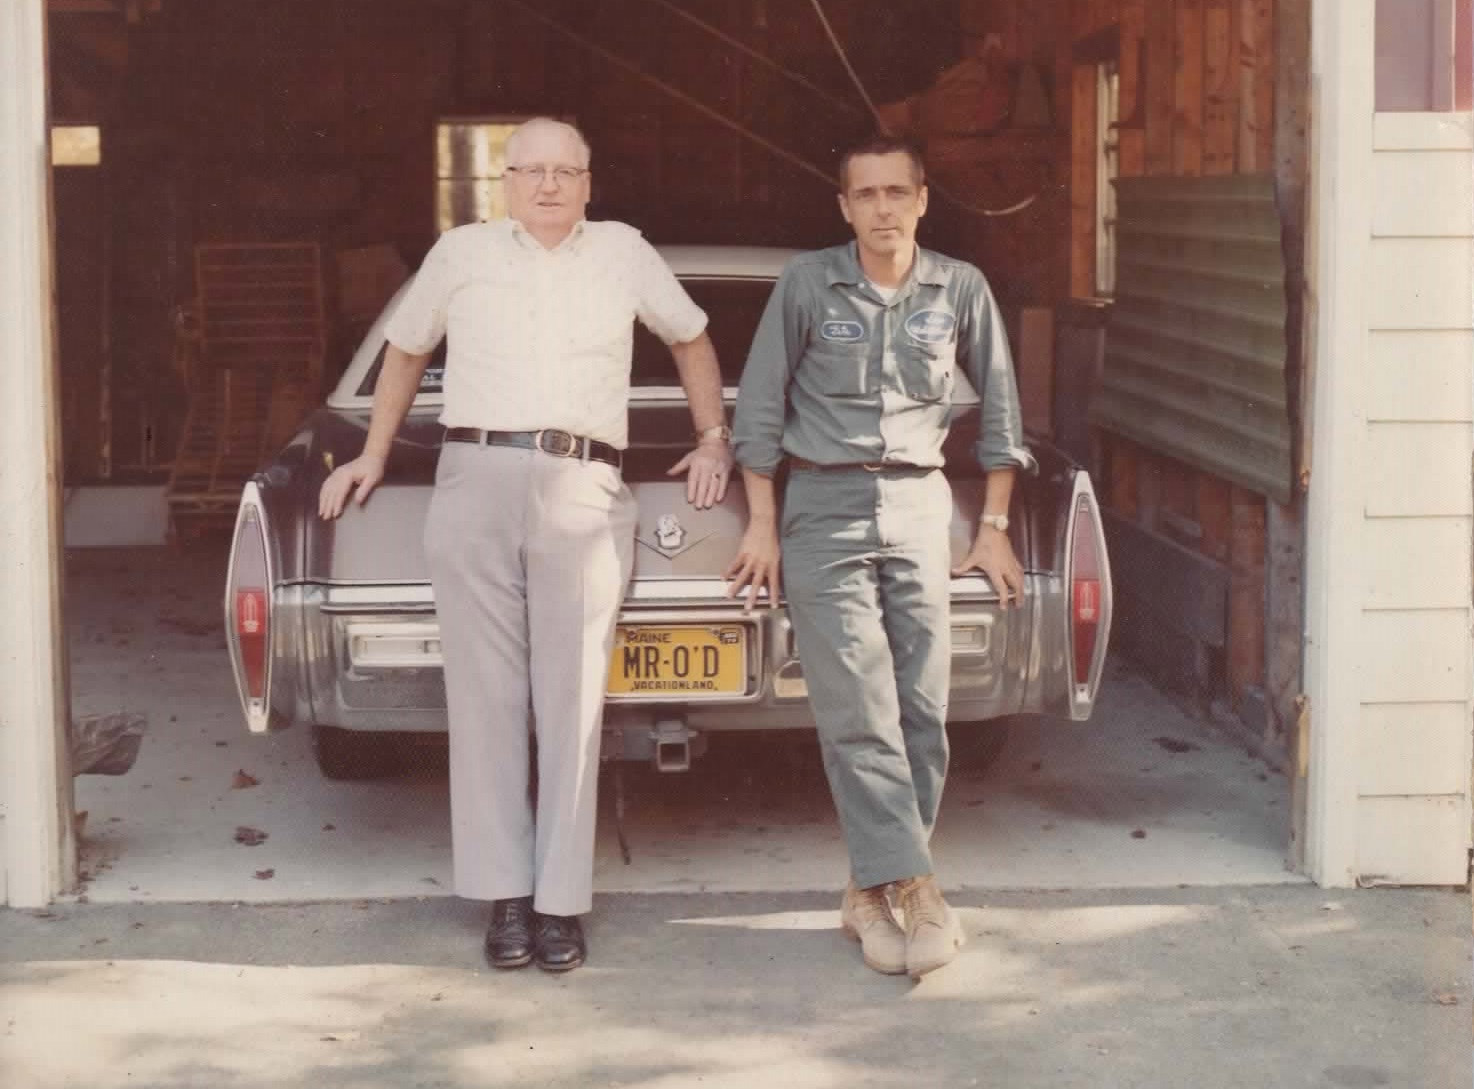 1970 photo of Waldo & Gordon (Pete) O'Donnell.  Pete started Elegant Homes in 1968.